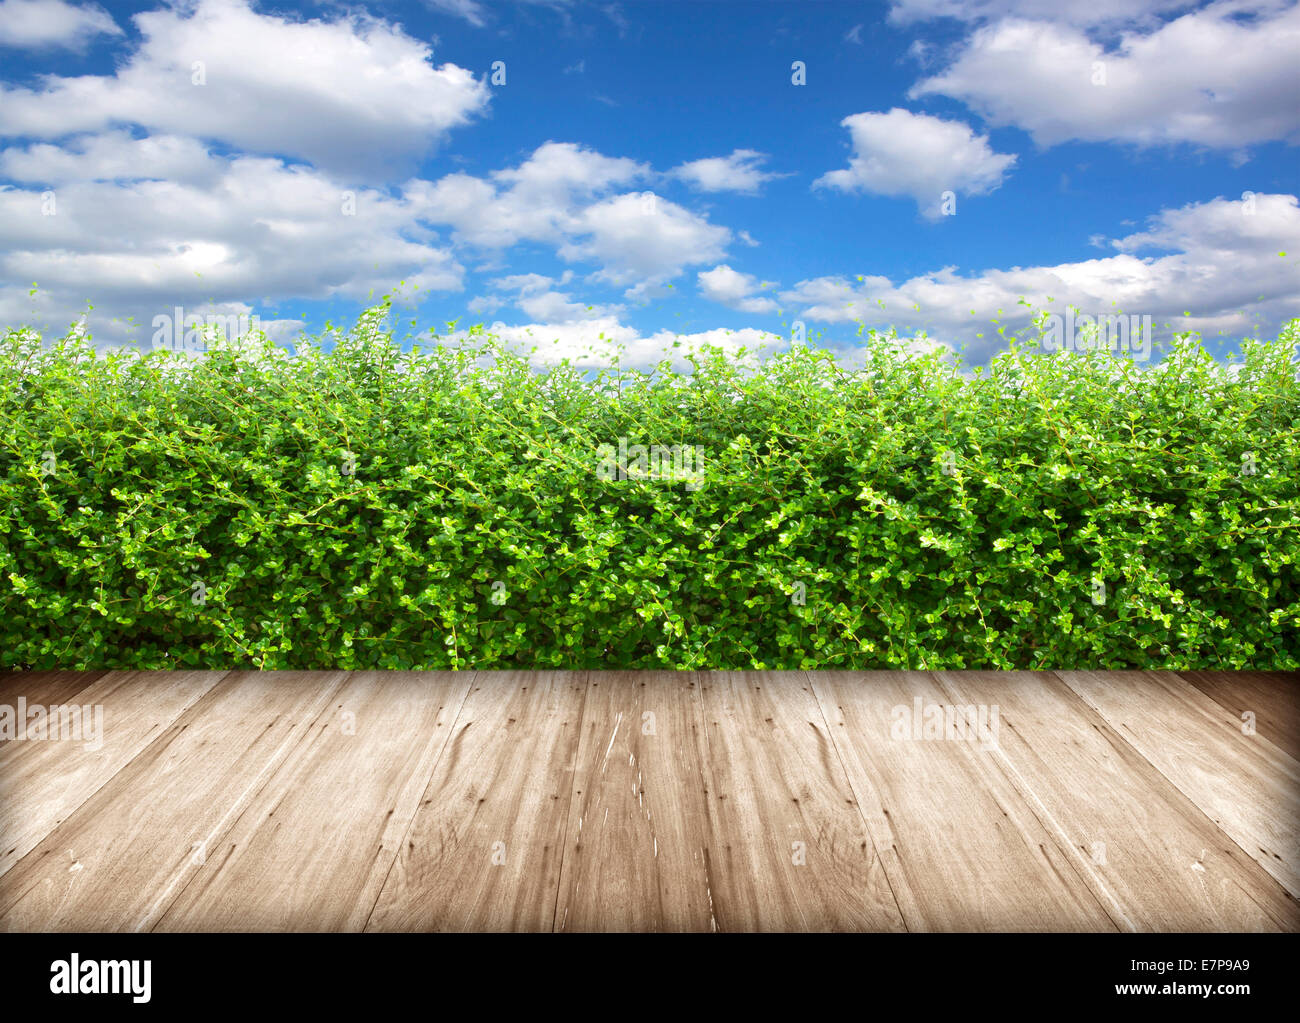 Bushes fence leaves green hardwood floors and sky. - Stock Image